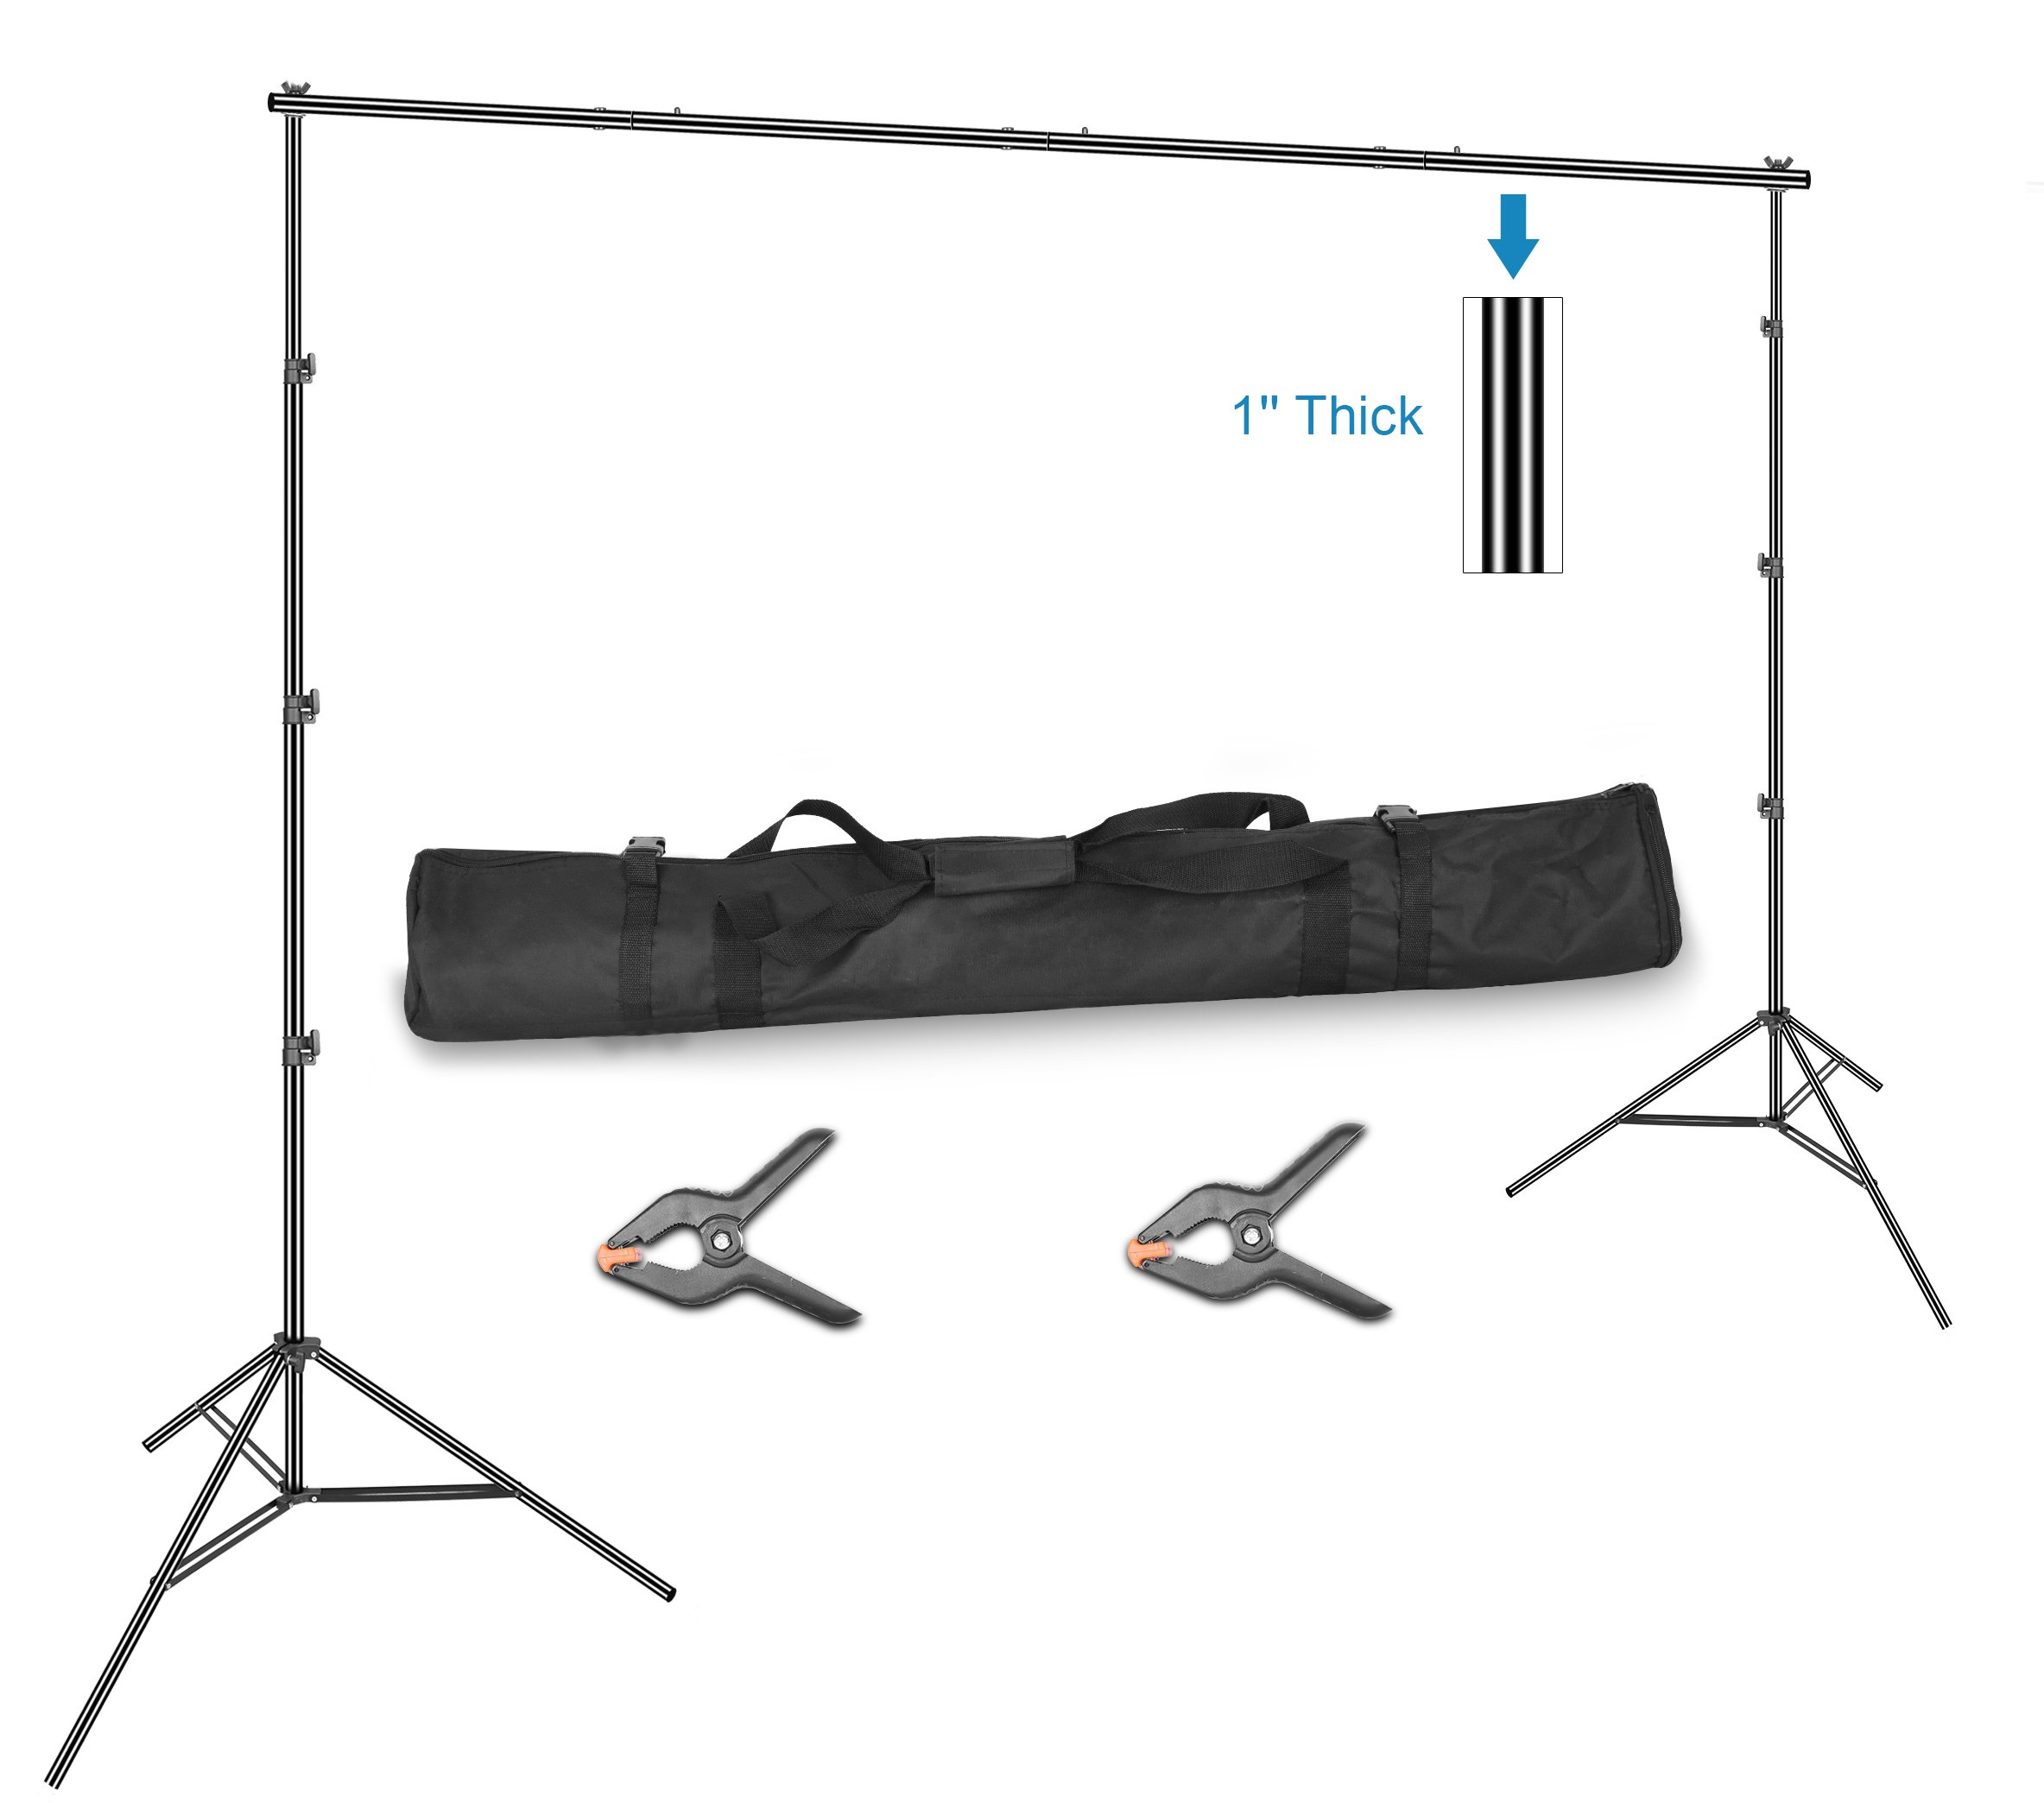 Emart 10 x 12ft (H X W) Photo Backdrop Stand Kit, Adjustable Photography Video Studio Background Stand Support System for Photo Booth Muslin by EMART